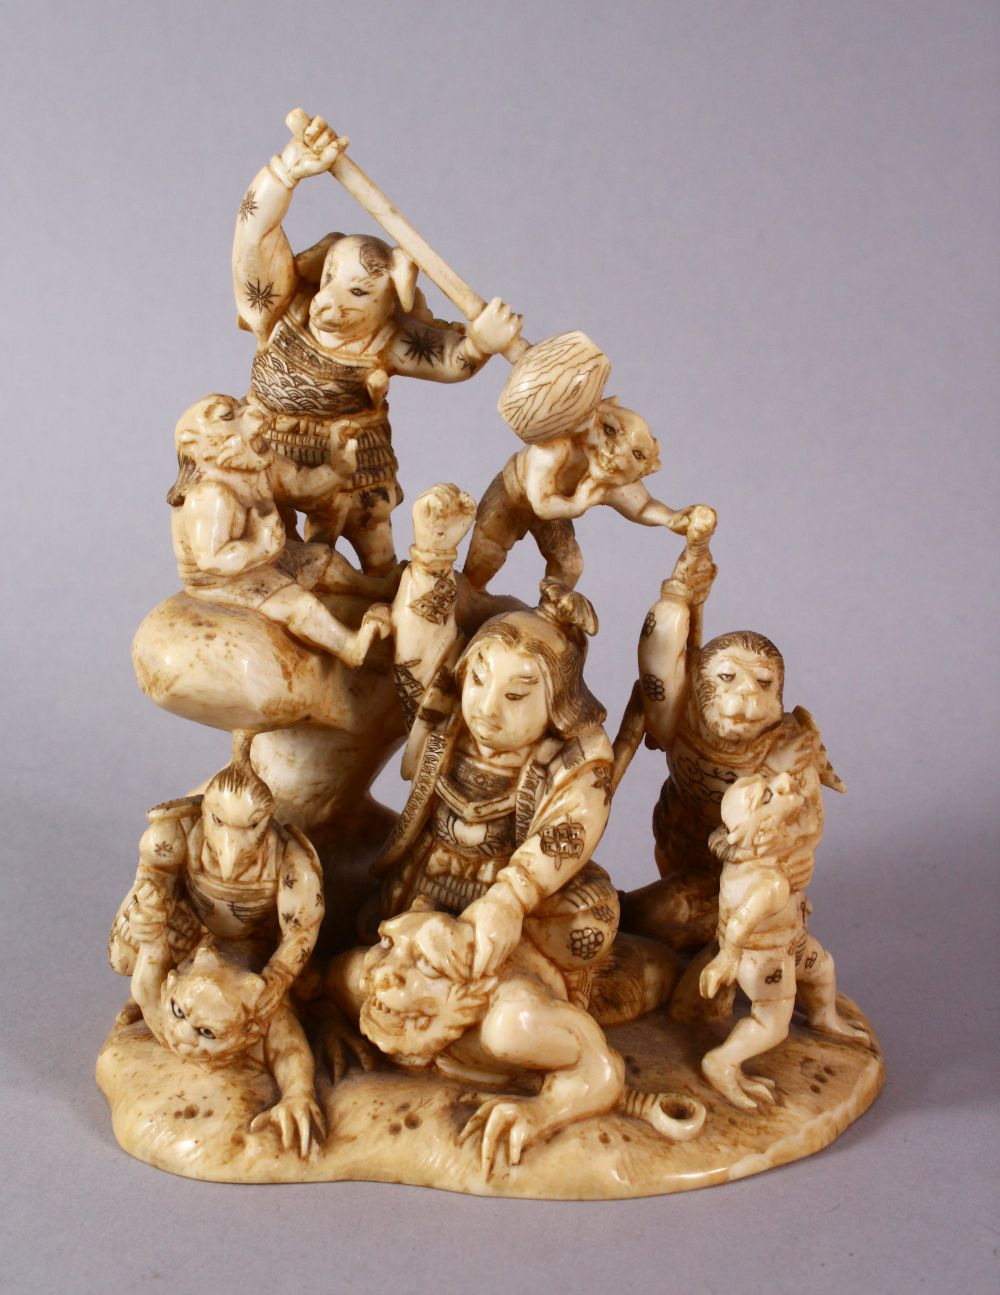 A JAPANESE MEIJI PERIOD CARVED IVORY OKIMONO GROUP - depicting figures attacking oni demons, one dog